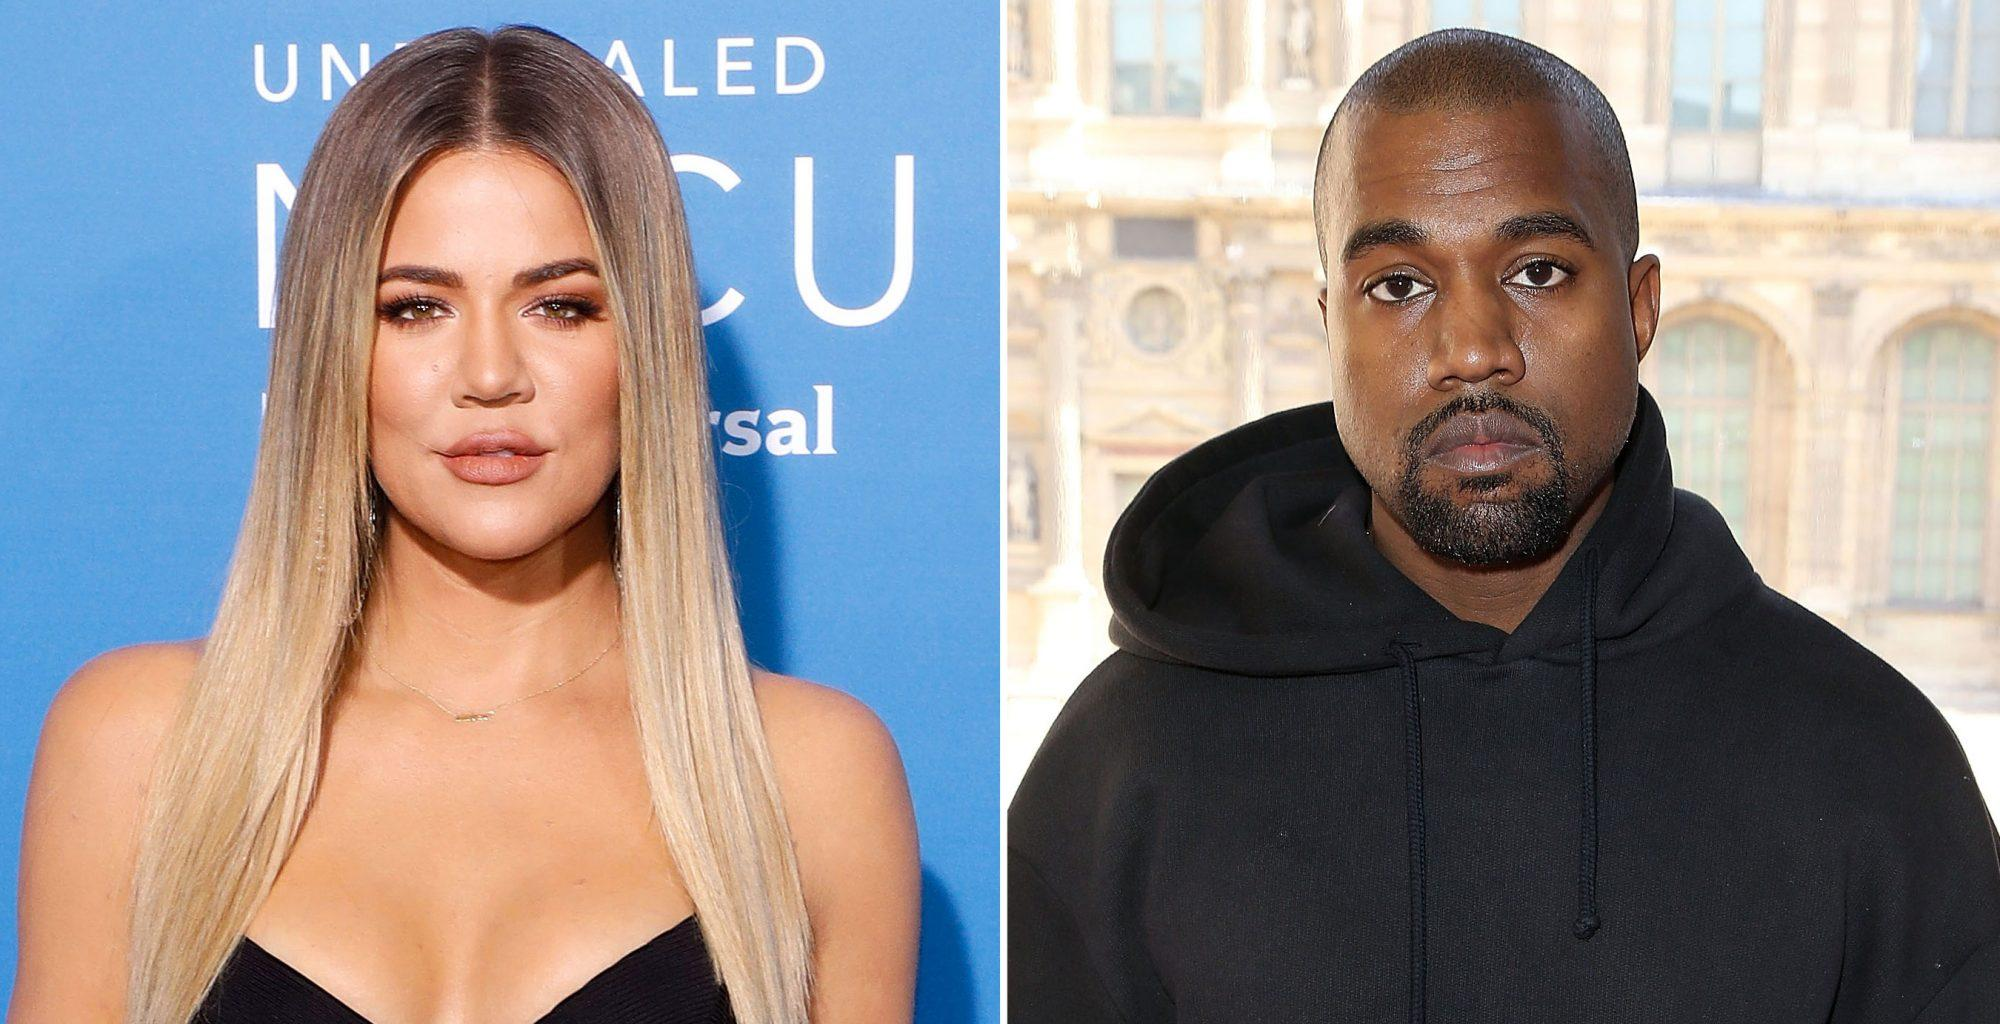 KUWTK: Khloe Kardashian Seems To Support Brother-In-Law Kanye West Despite His Controversial Comments And Outrageous Presidential Bid!